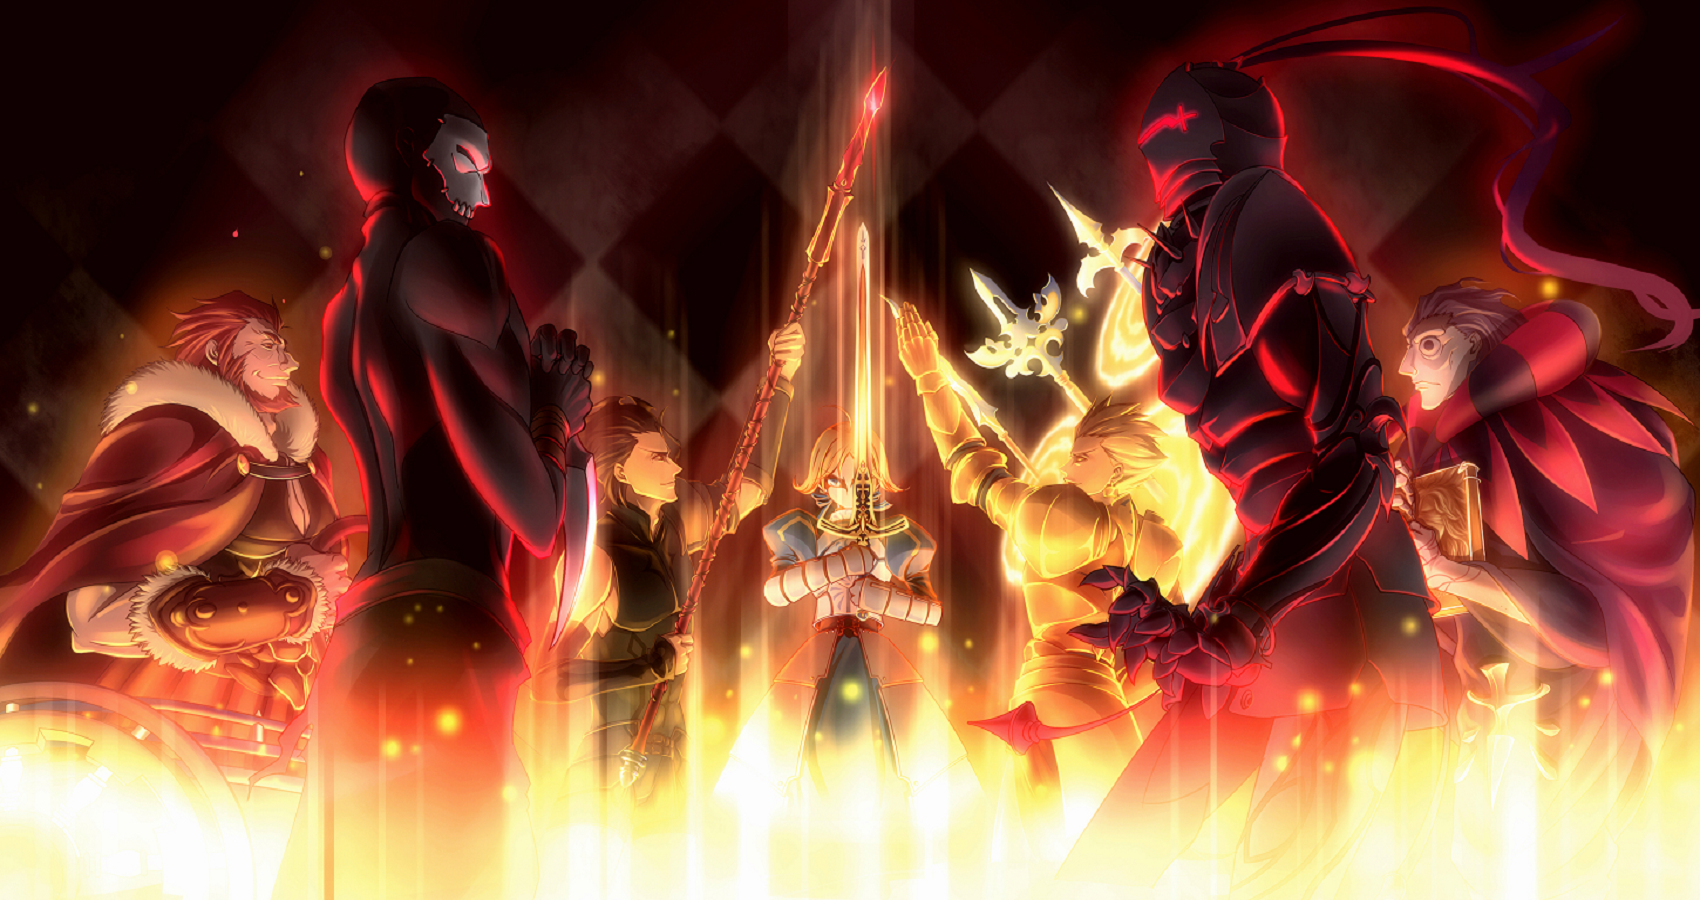 Fate Zero The 10 Most Powerful Characters Ranked Cbr